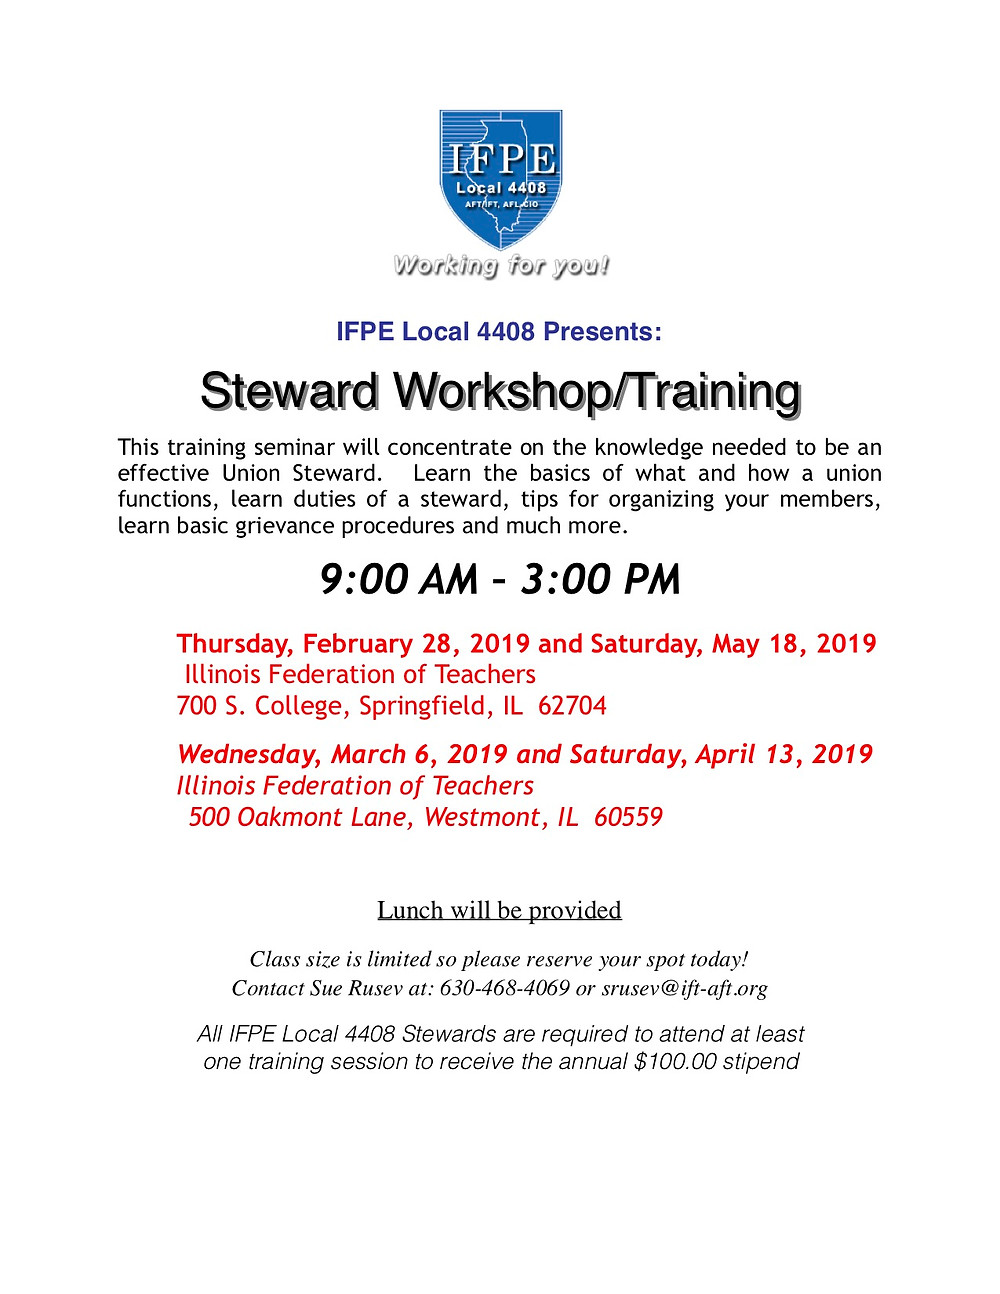 Interested in becoming a union steward or refreshing your skills? Make sure to attend one of these sessions (two in Westmont and two in Springfield). To reserve a spot, call Sue Rusev at 630-468-4069 or e-mail her at srusev@ift-aft.org